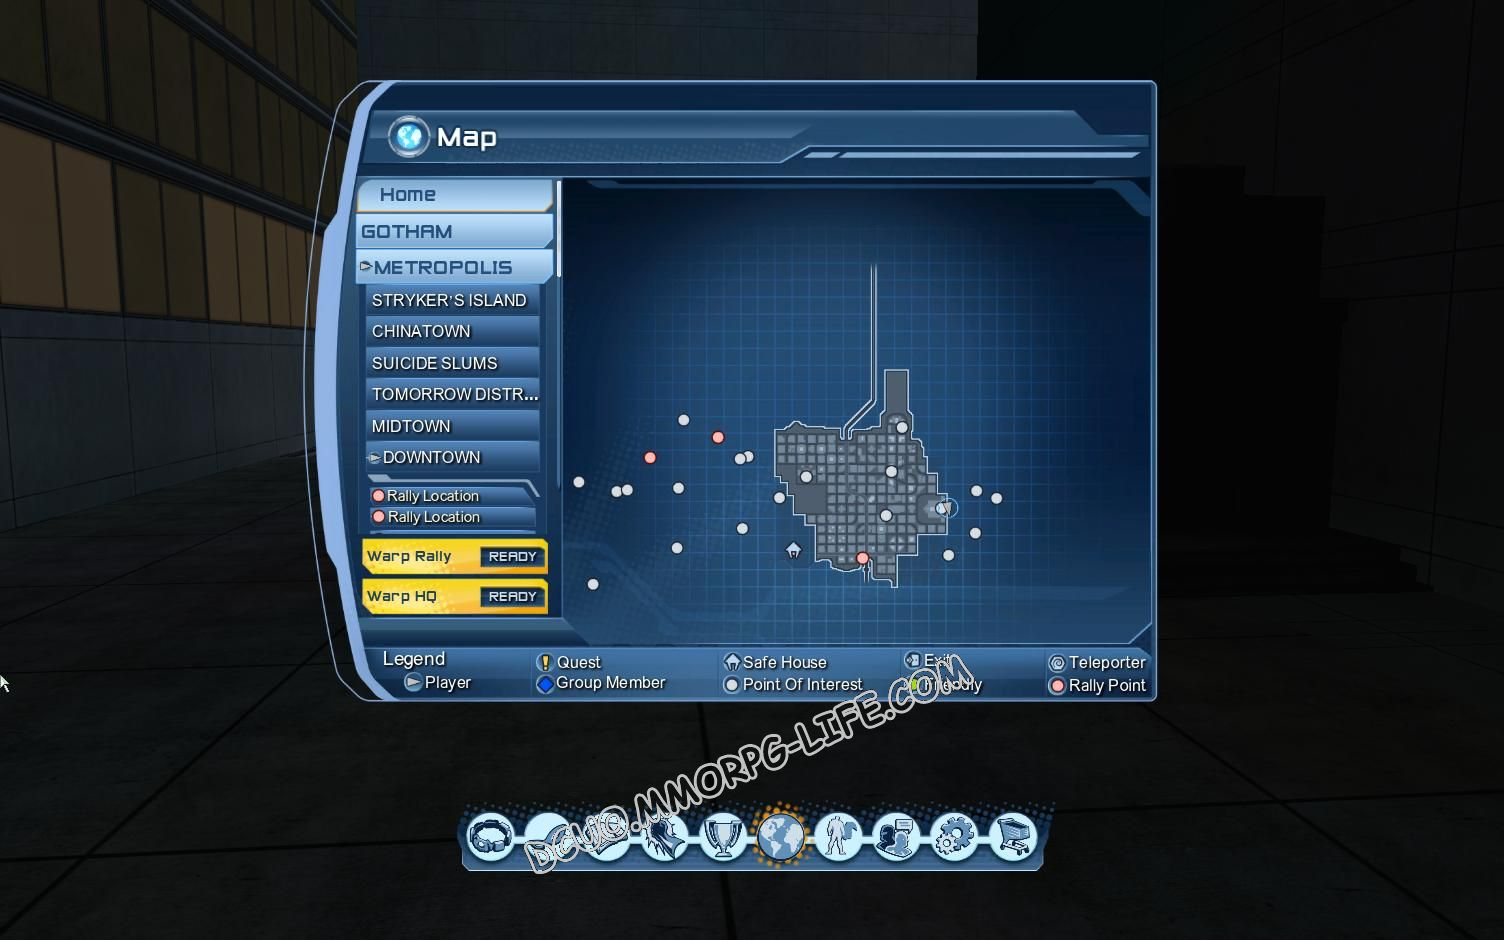 Briefing: LexCorp, step 4 LexCorp: MetU  image 1558 middle size